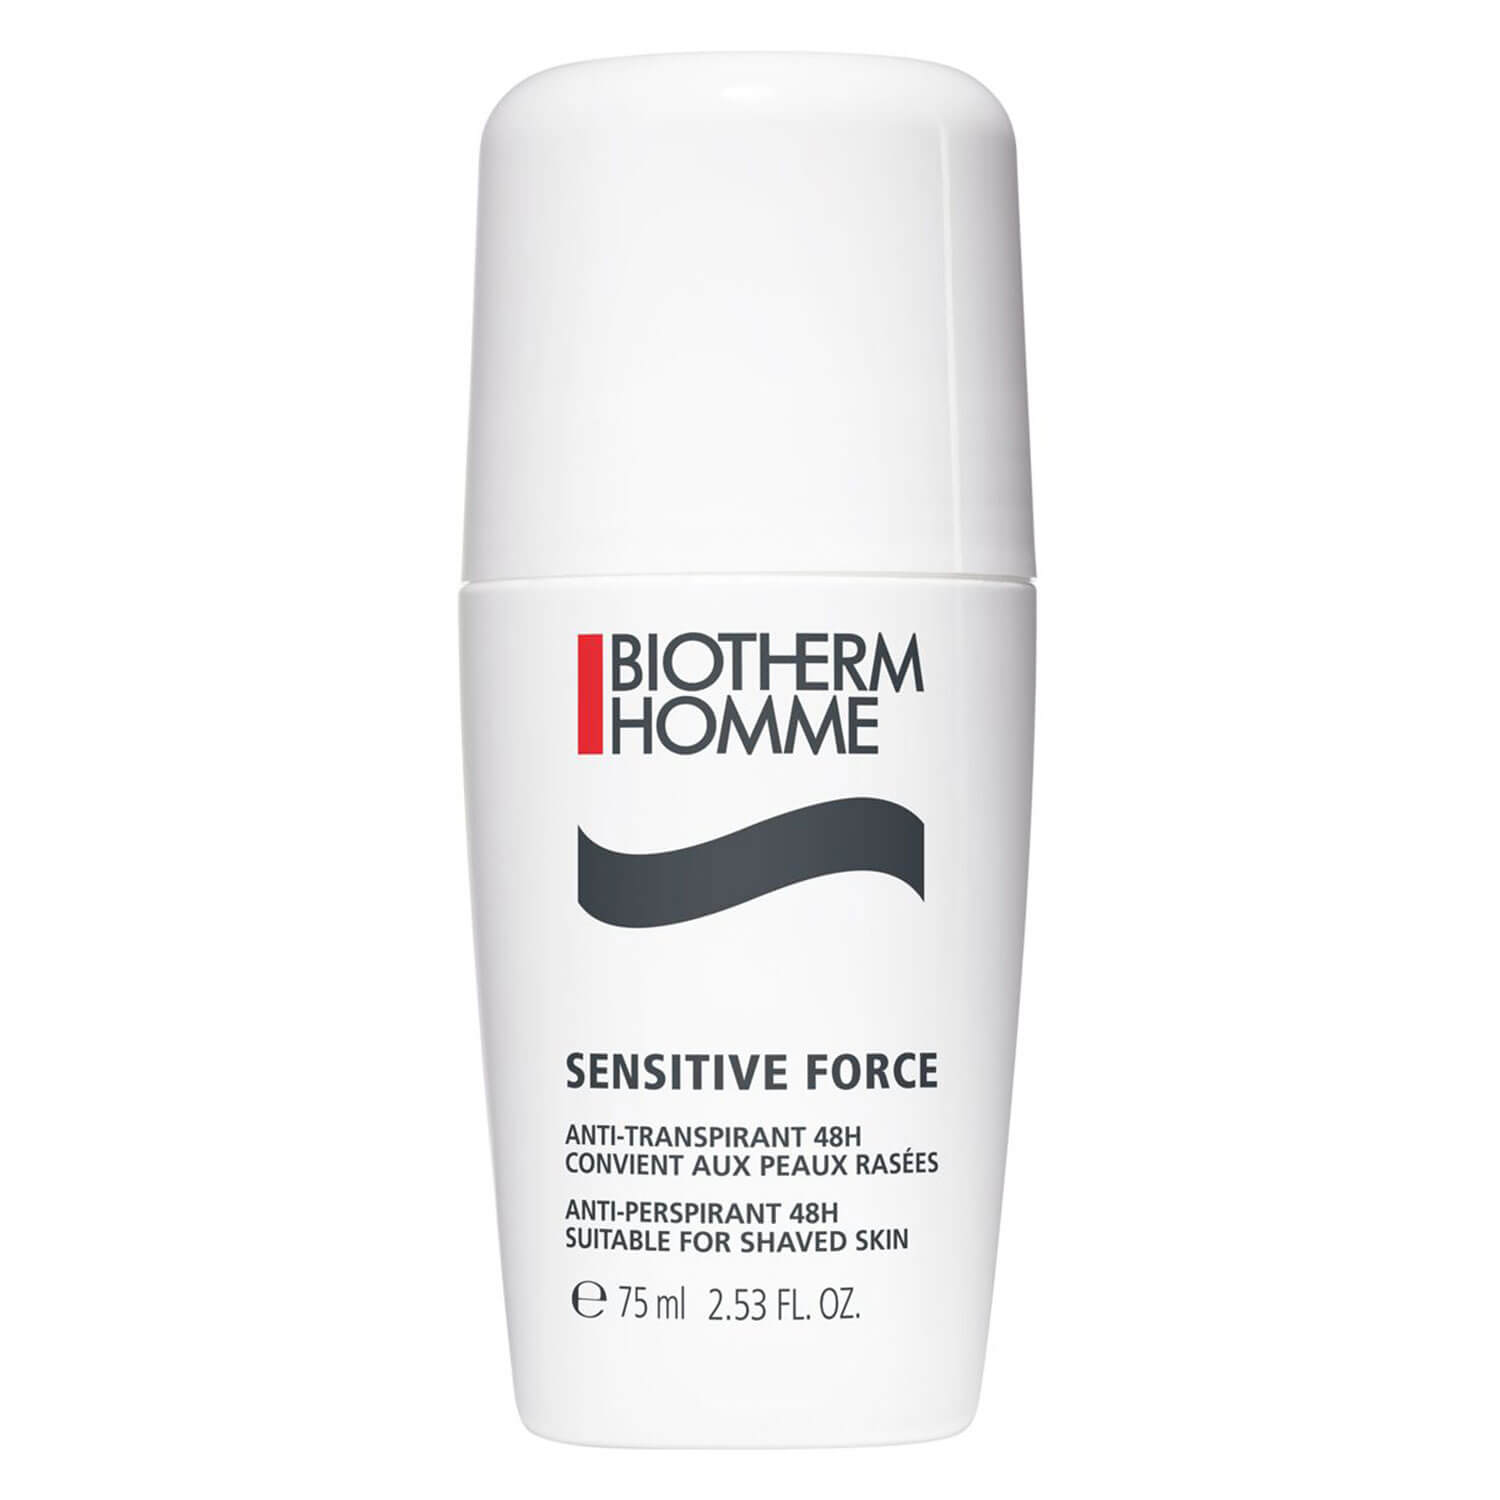 Biotherm Homme - Sensitive Force Anti-Perspirant 48H